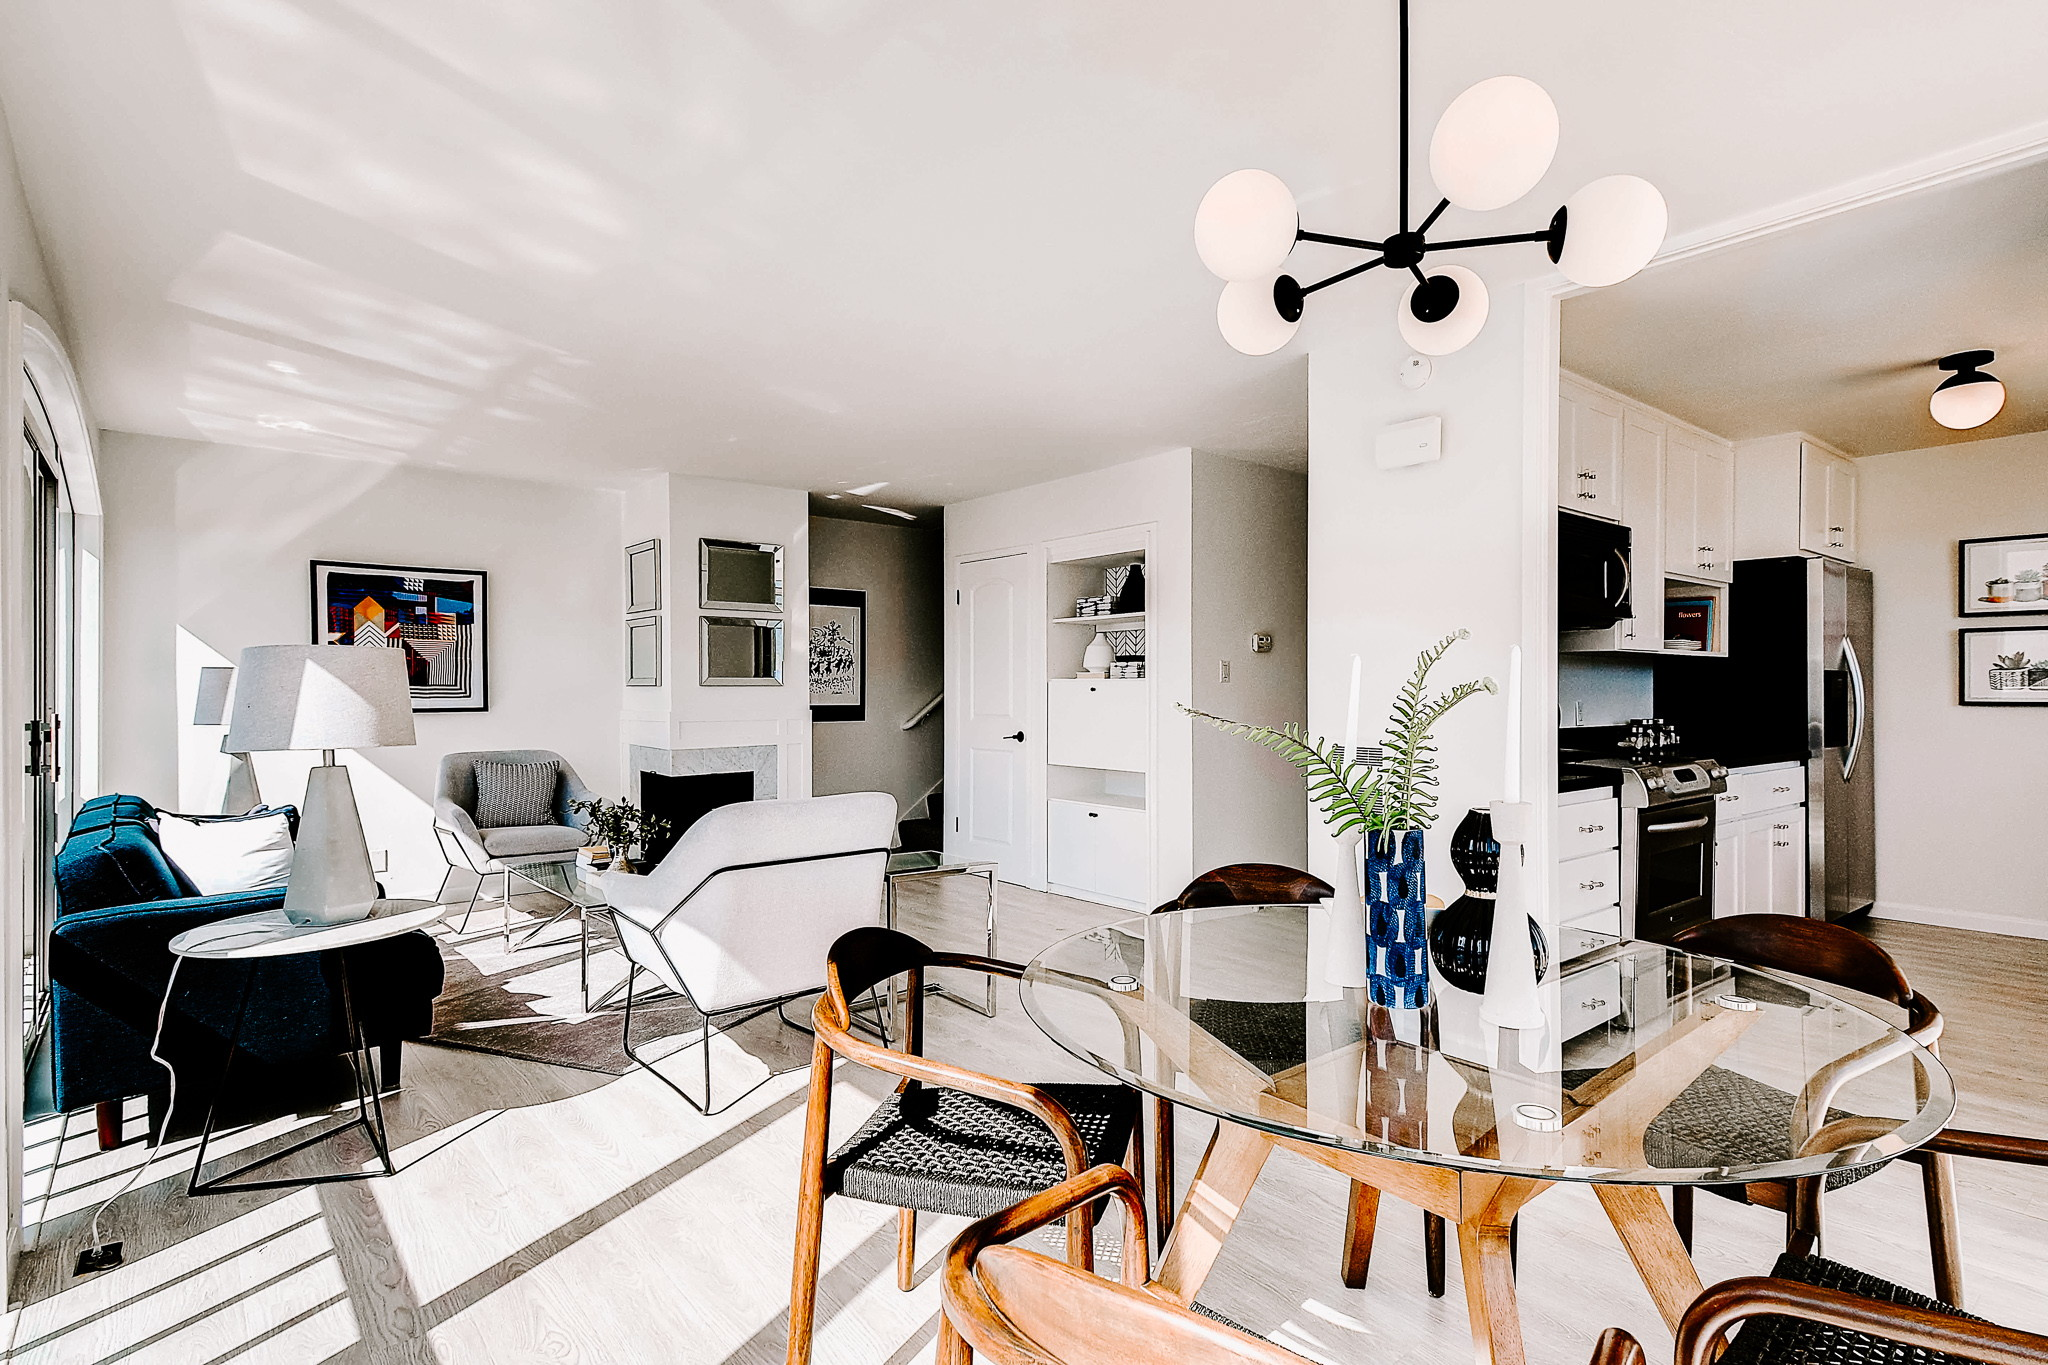 3223 Shelter Bay Avenue-9 Mill Valley Top Realtor - Allie Fornesi on Own Marin County's #1 Real Estate Team.jpg